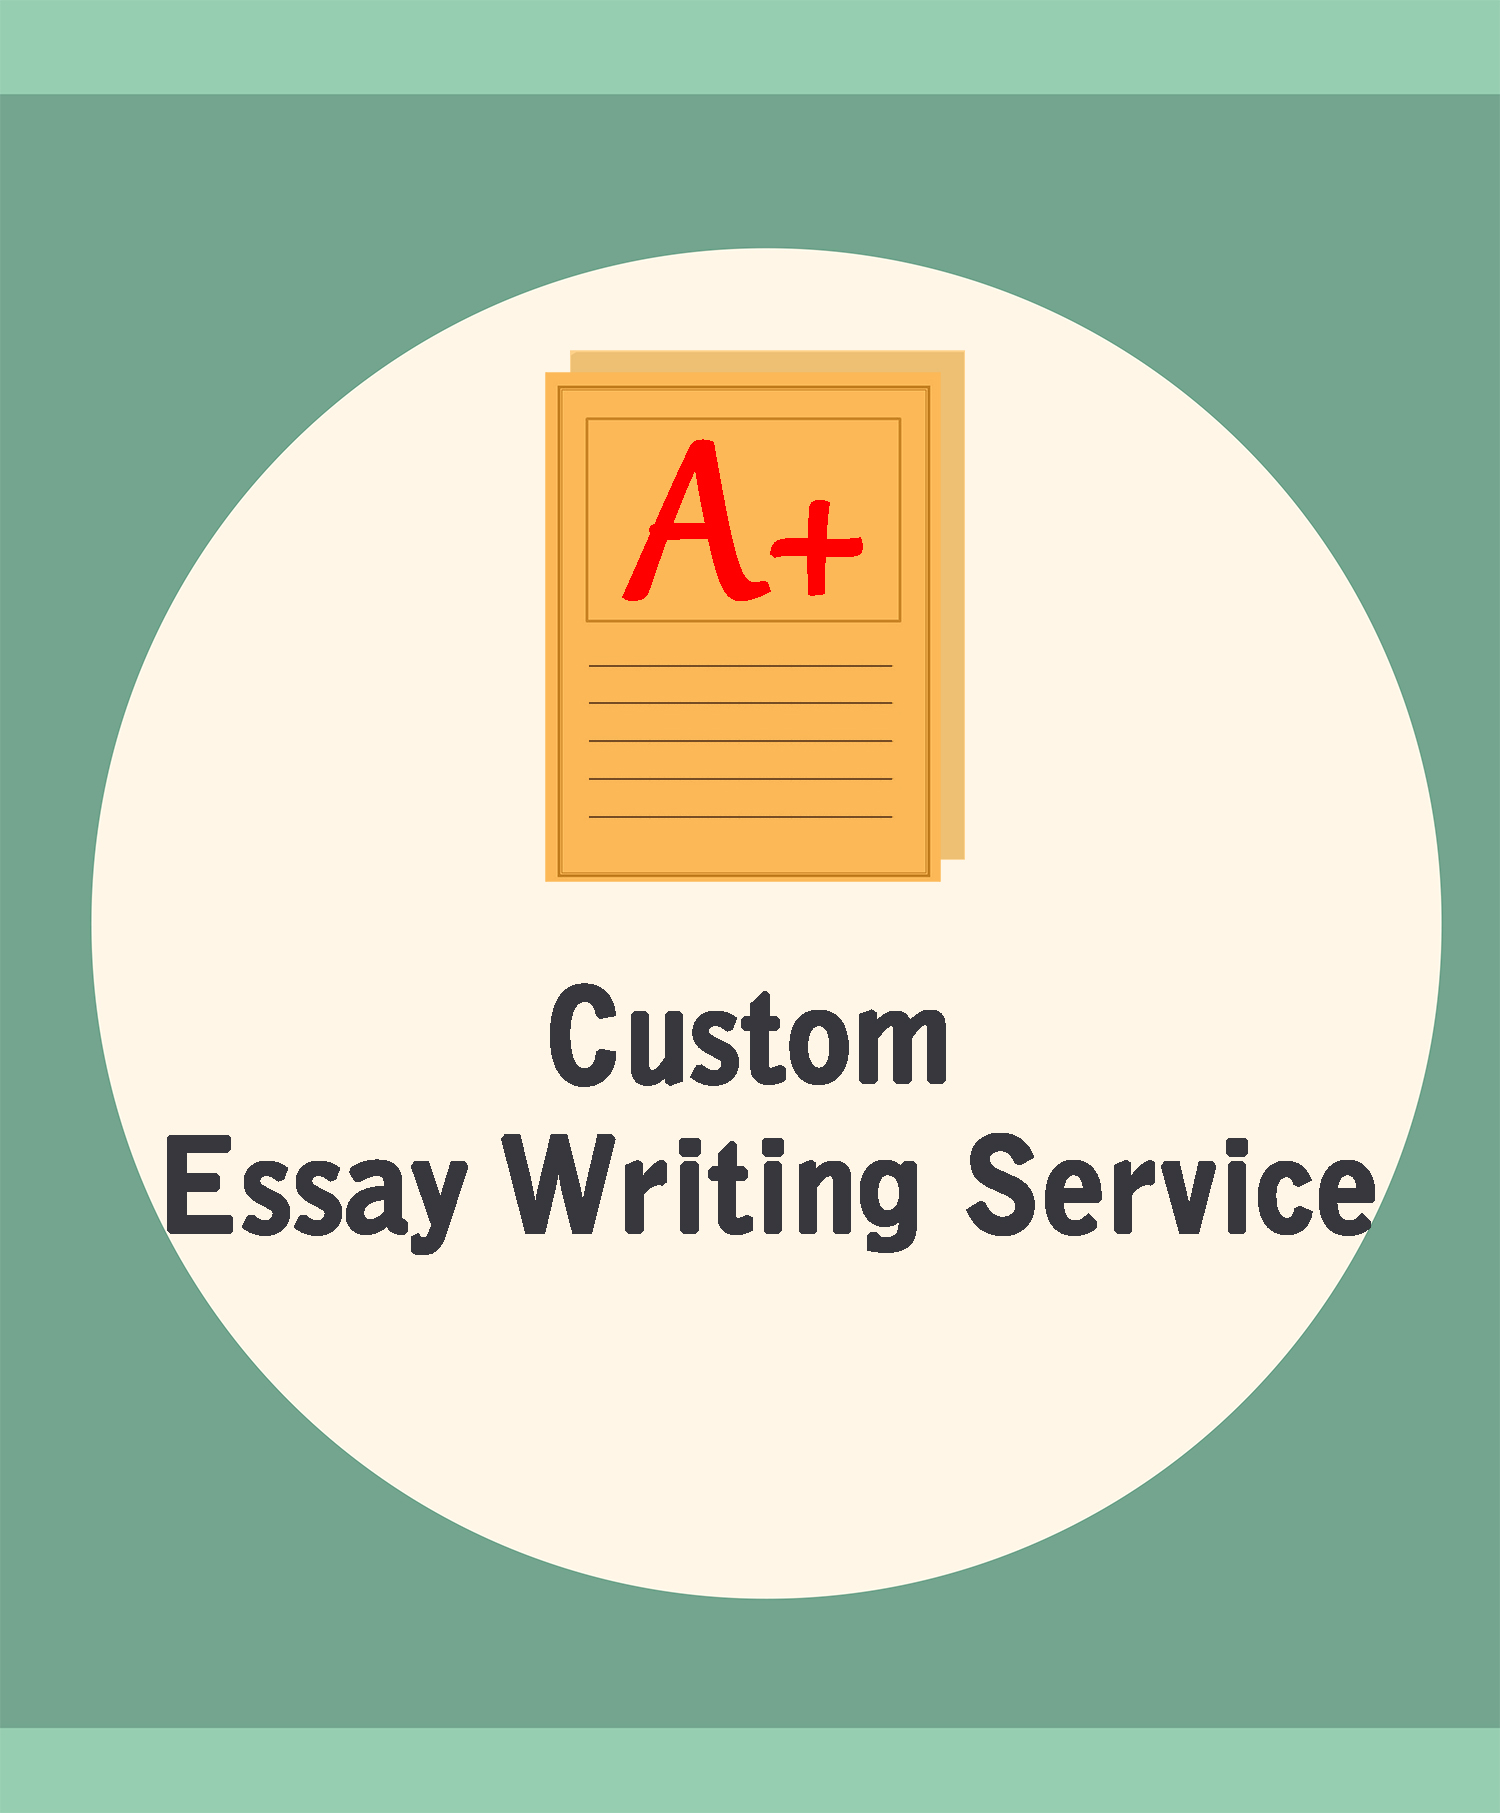 Essay writting service